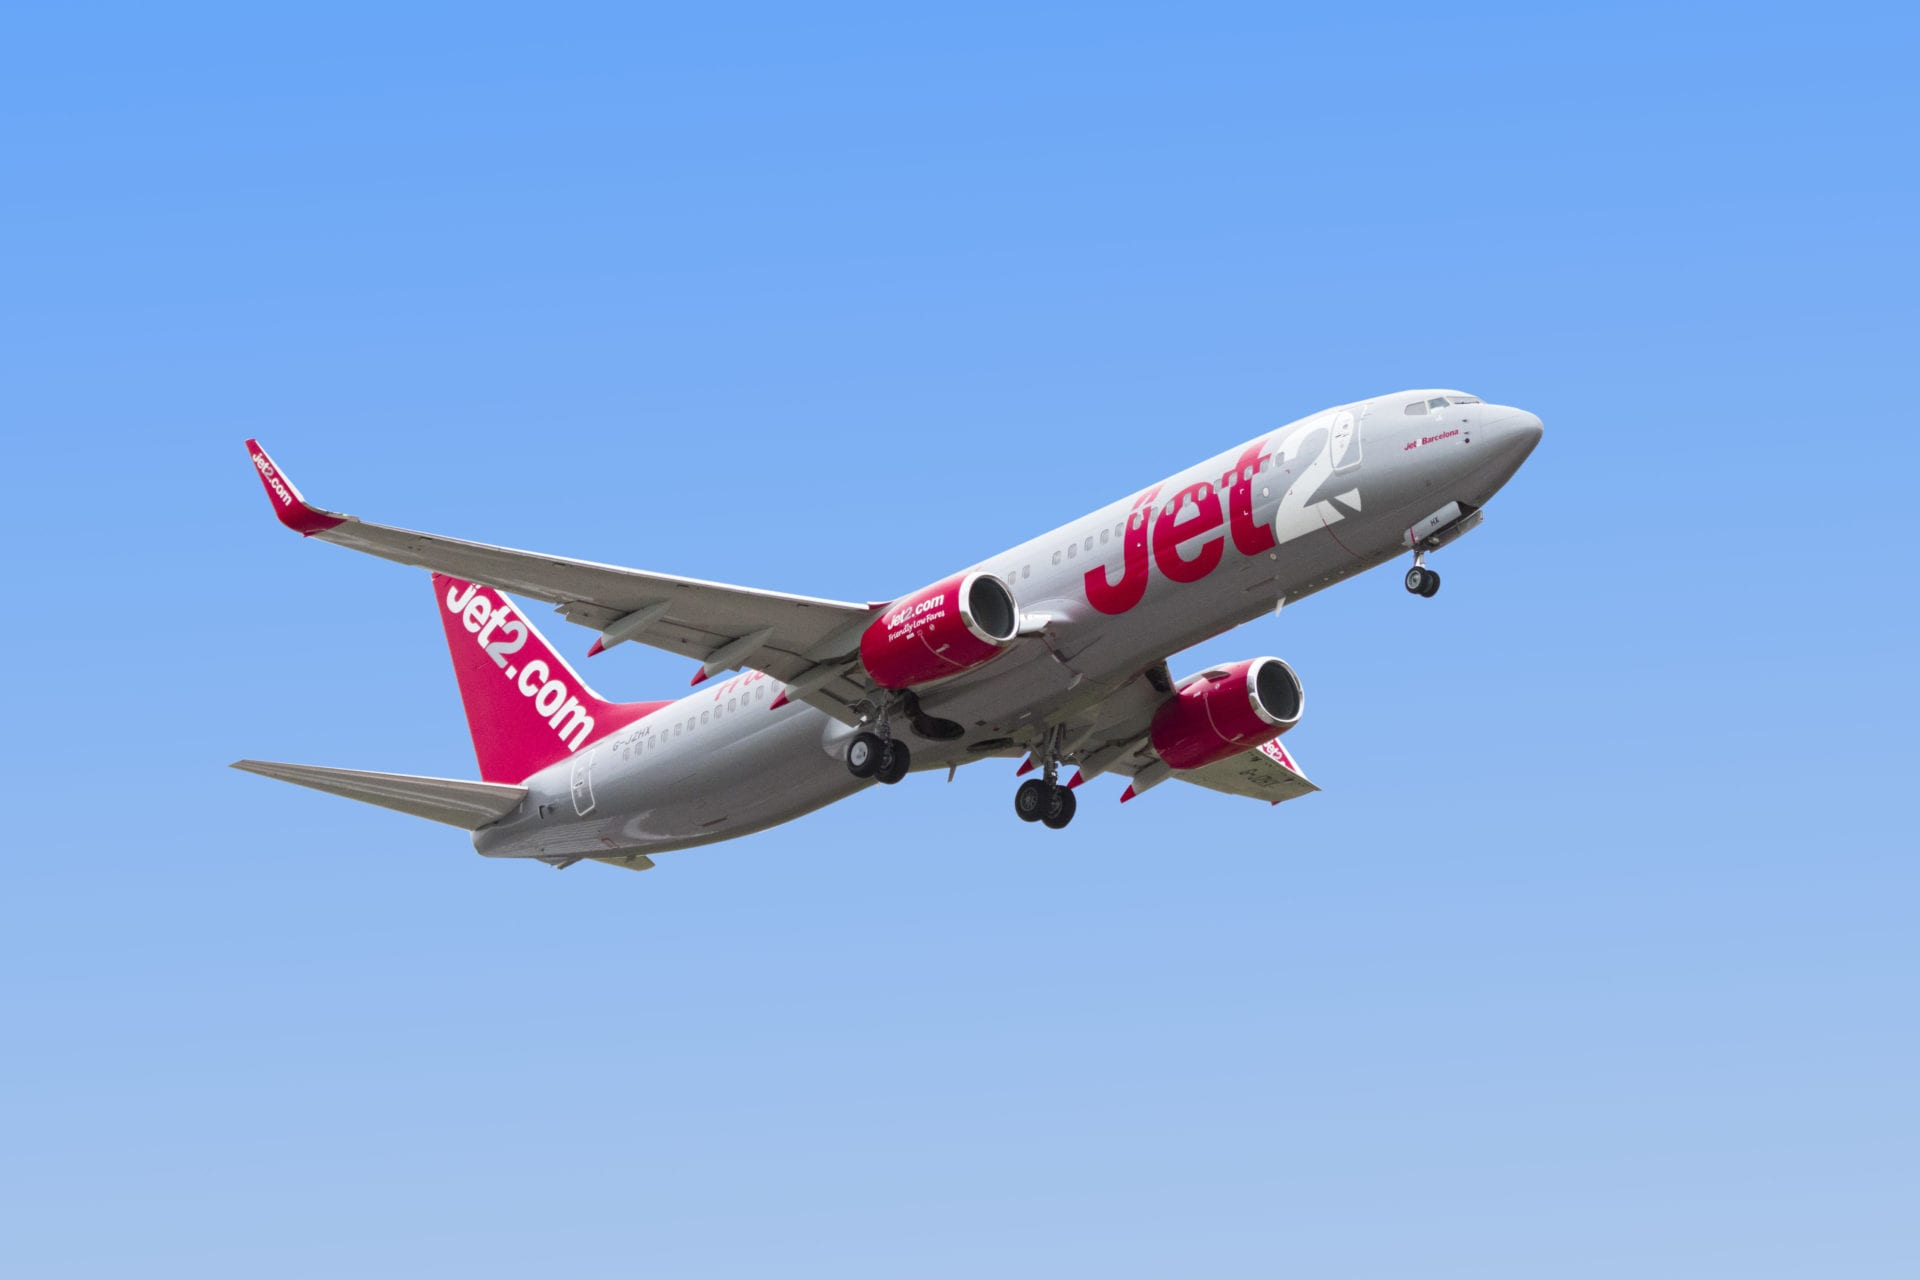 Jet2holidaysWhich?Recommended Provider